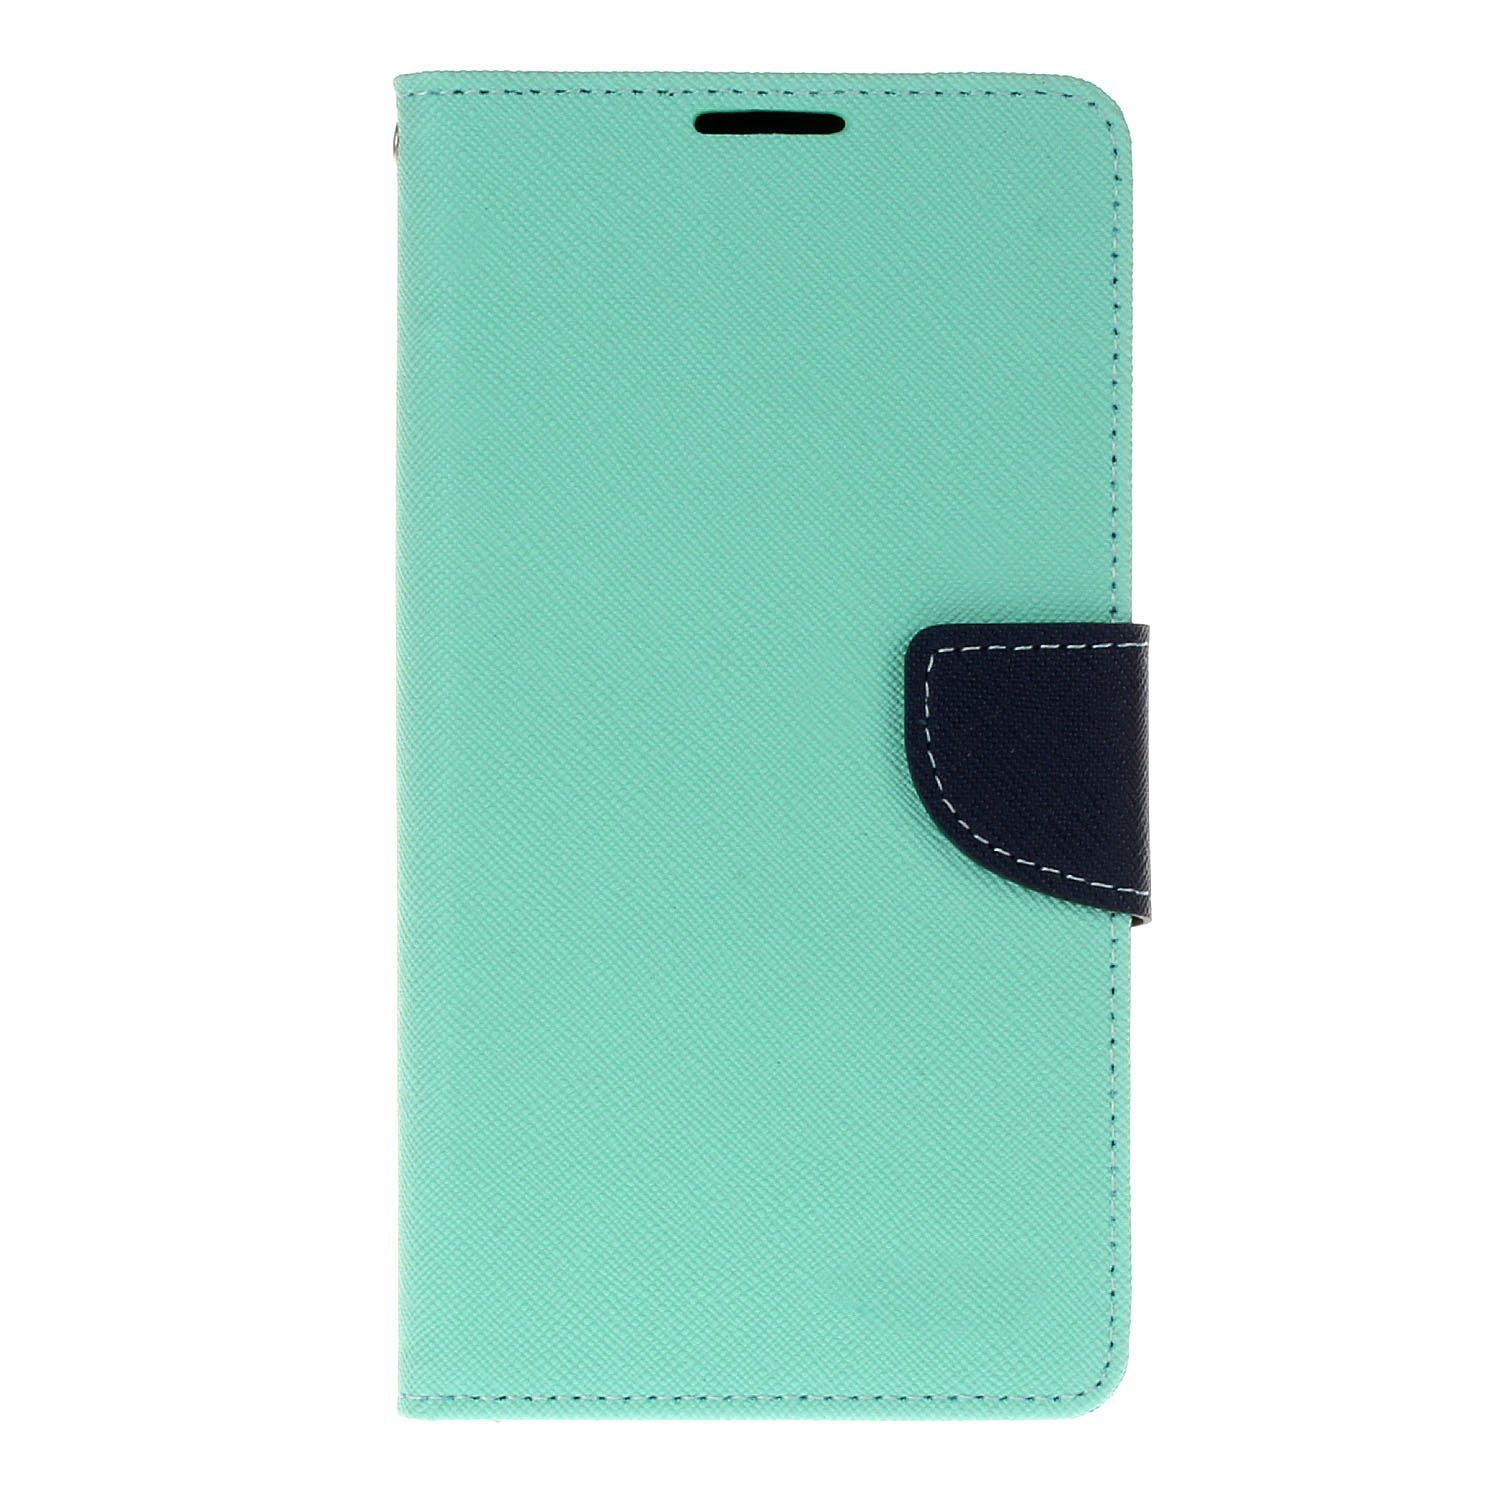 LG V10 Case Wallet,SUNWAY [Kickstand Feature] Flip Folio Premium PU leather wallet case with ID&Credit Card Pockets for LG V10 - Blue